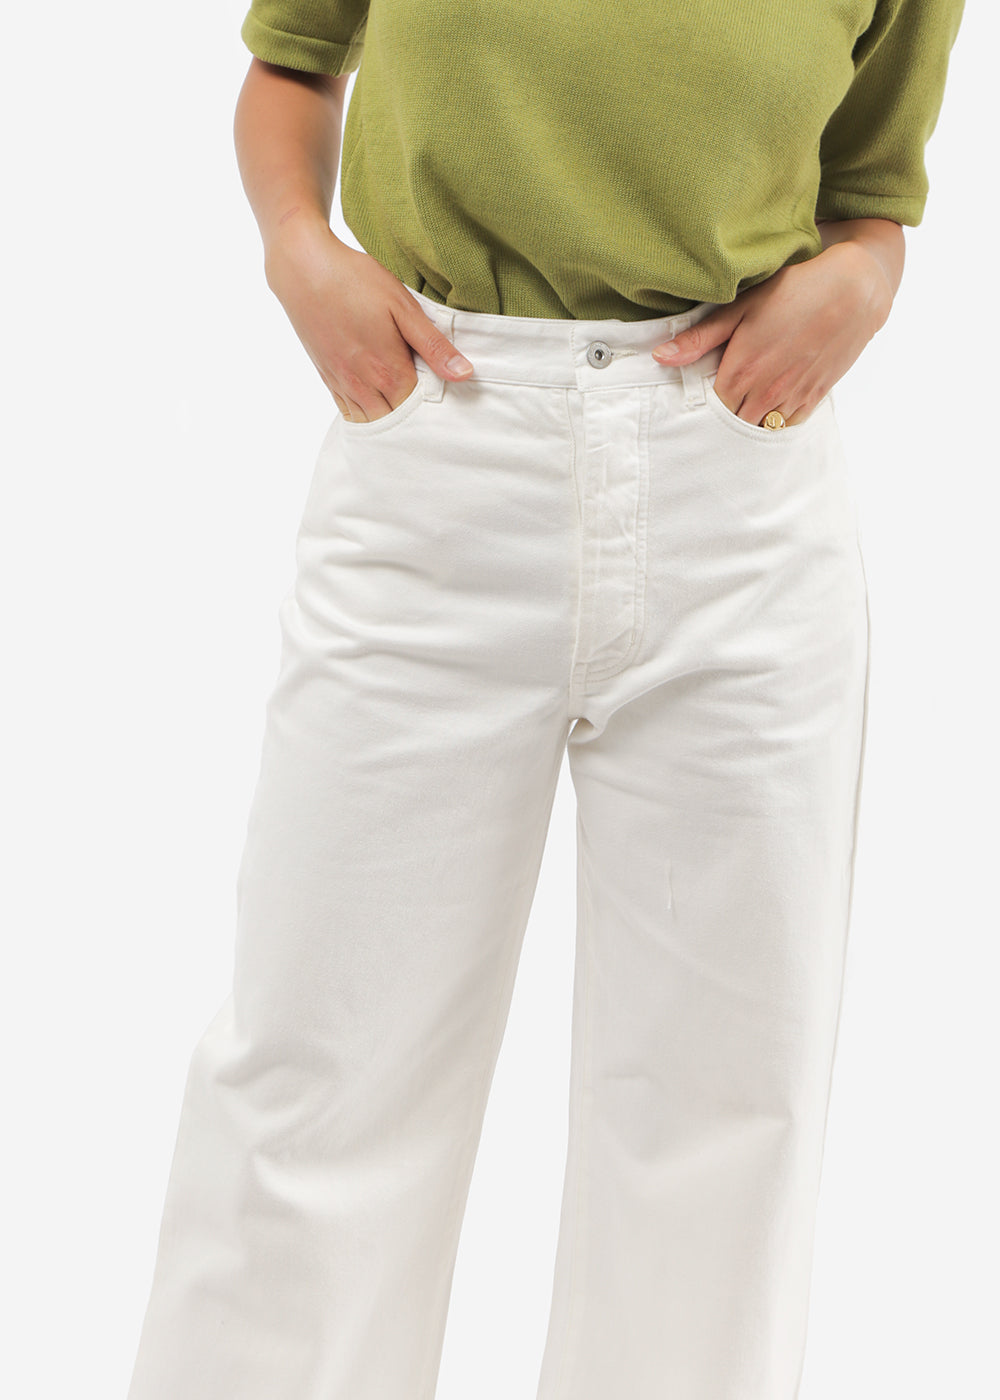 Kowtow Stage Pant — Shop sustainable fashion and slow fashion at New Classics Studios